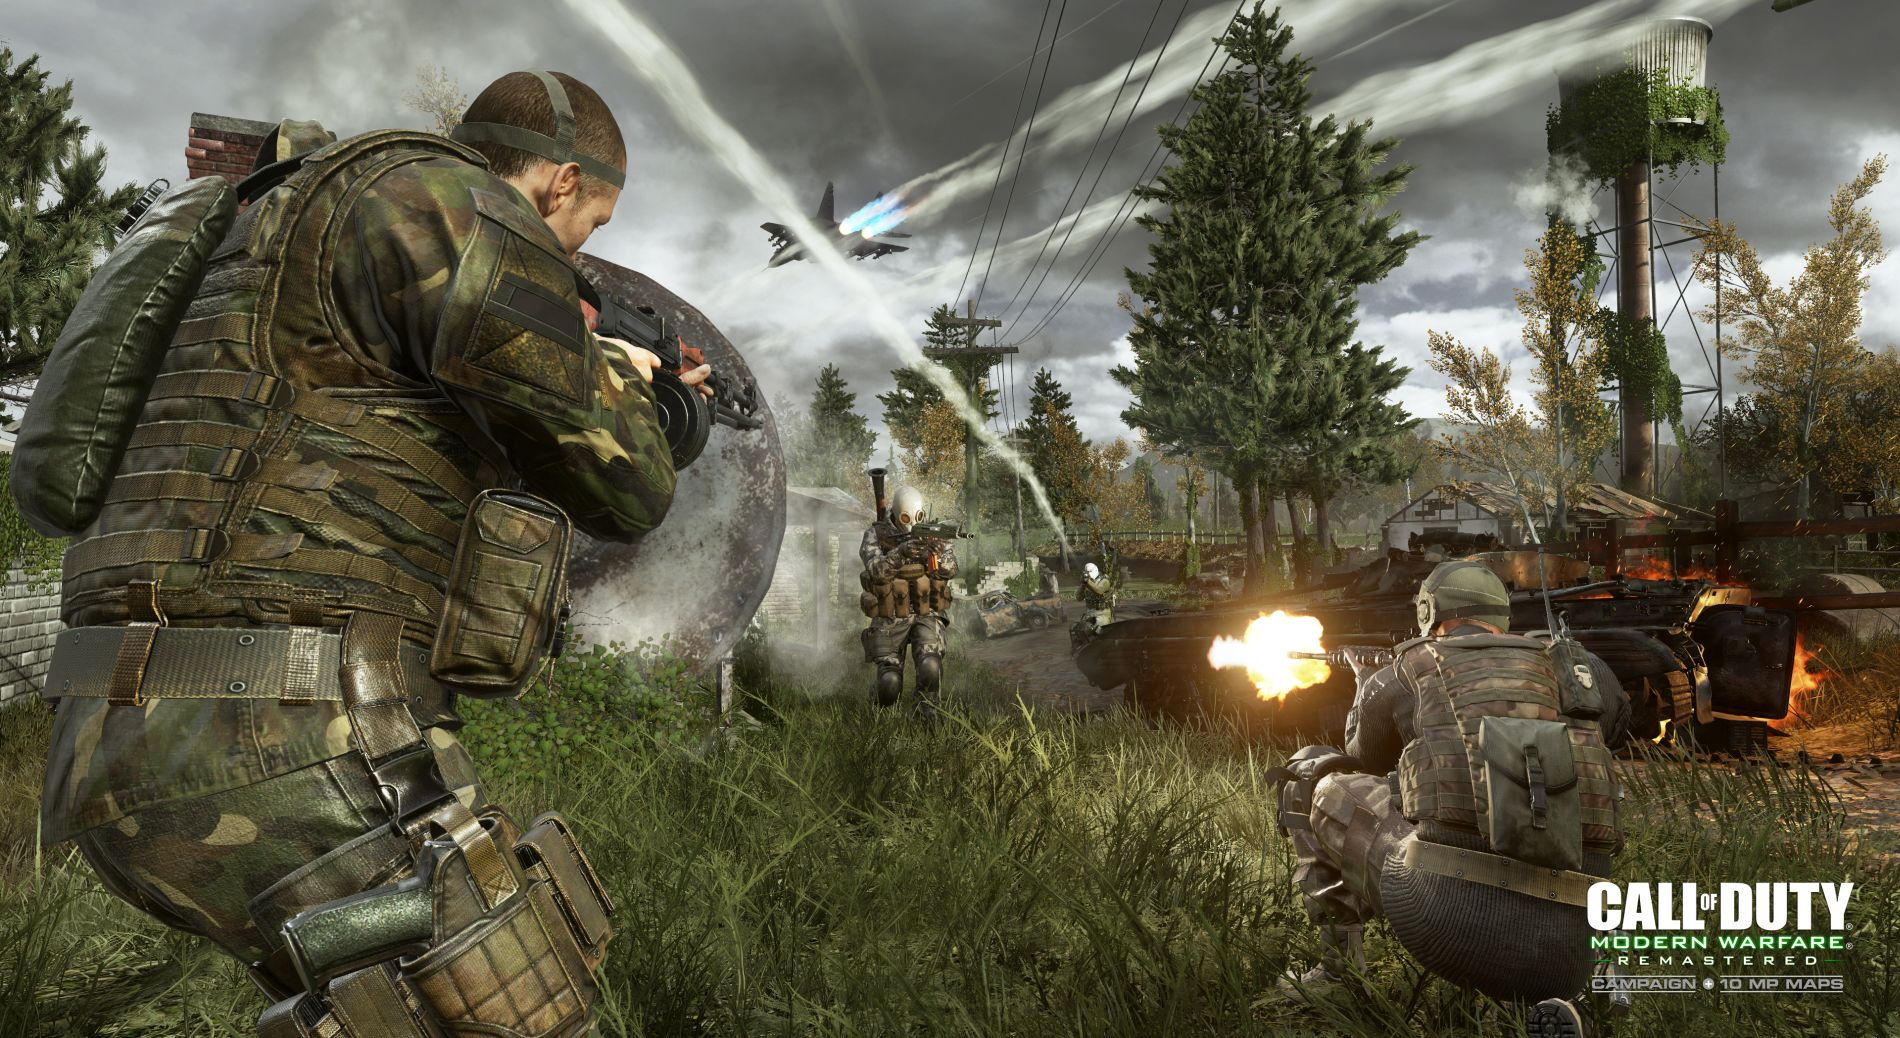 helicopter game online play for free with Call Of Duty 4 Modern Warfare Remastered Contains All 16 Original Multiplayer Maps on Unturned furthermore Buy besides Block City Wars Apk Mod Cheats together with Crackdown 3 Multiplayer Cloud Xbox One Games  2015 likewise .